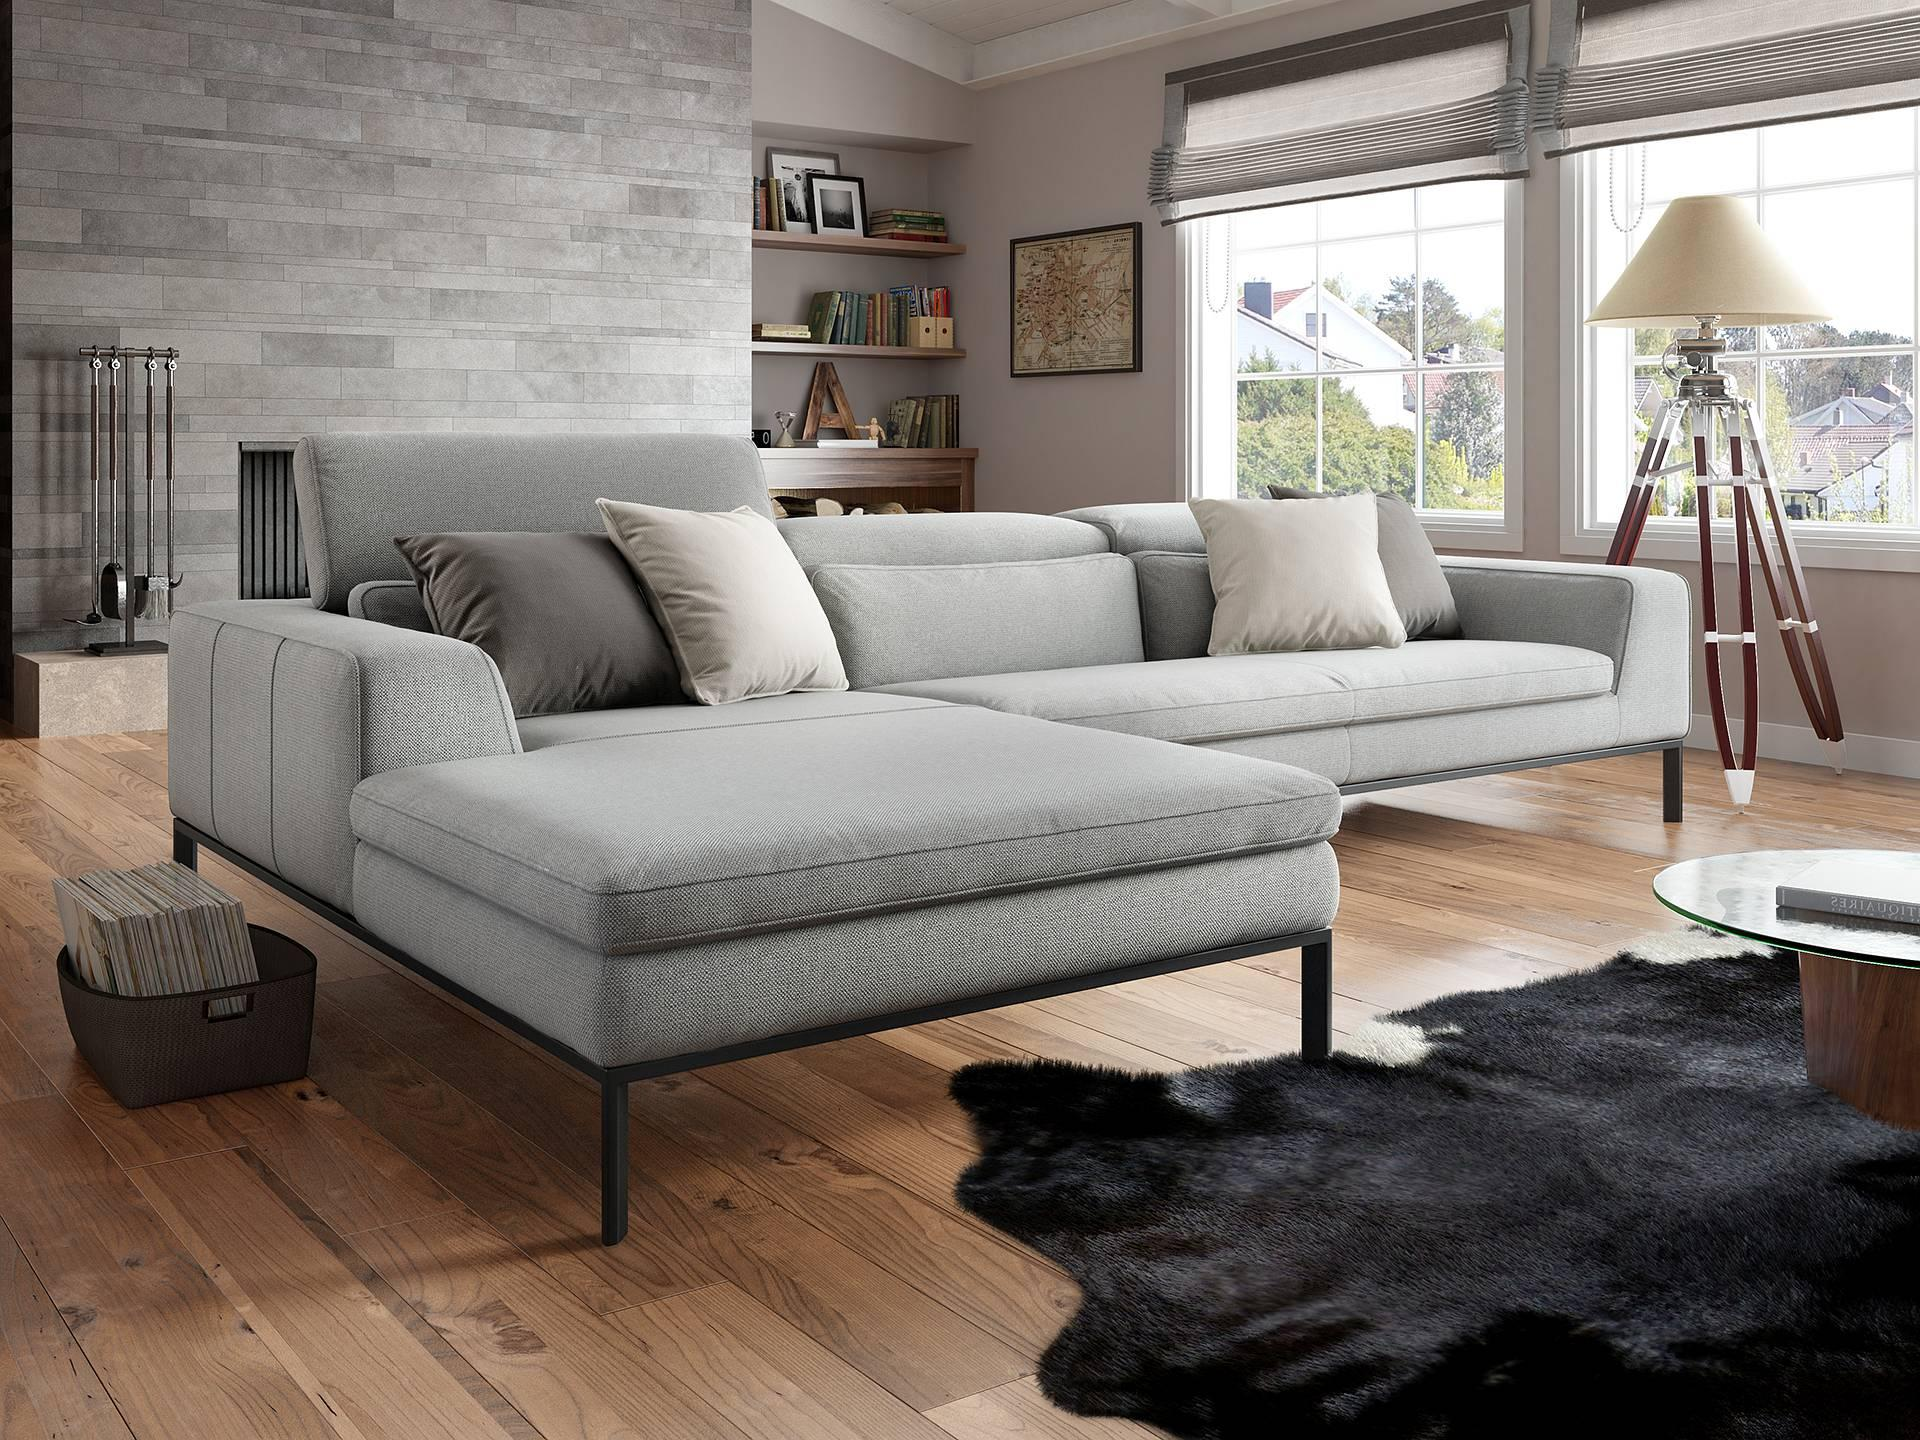 Sofa Wohnzimmer sofa ottomane simple oversized wingback chair oversized slipcovers